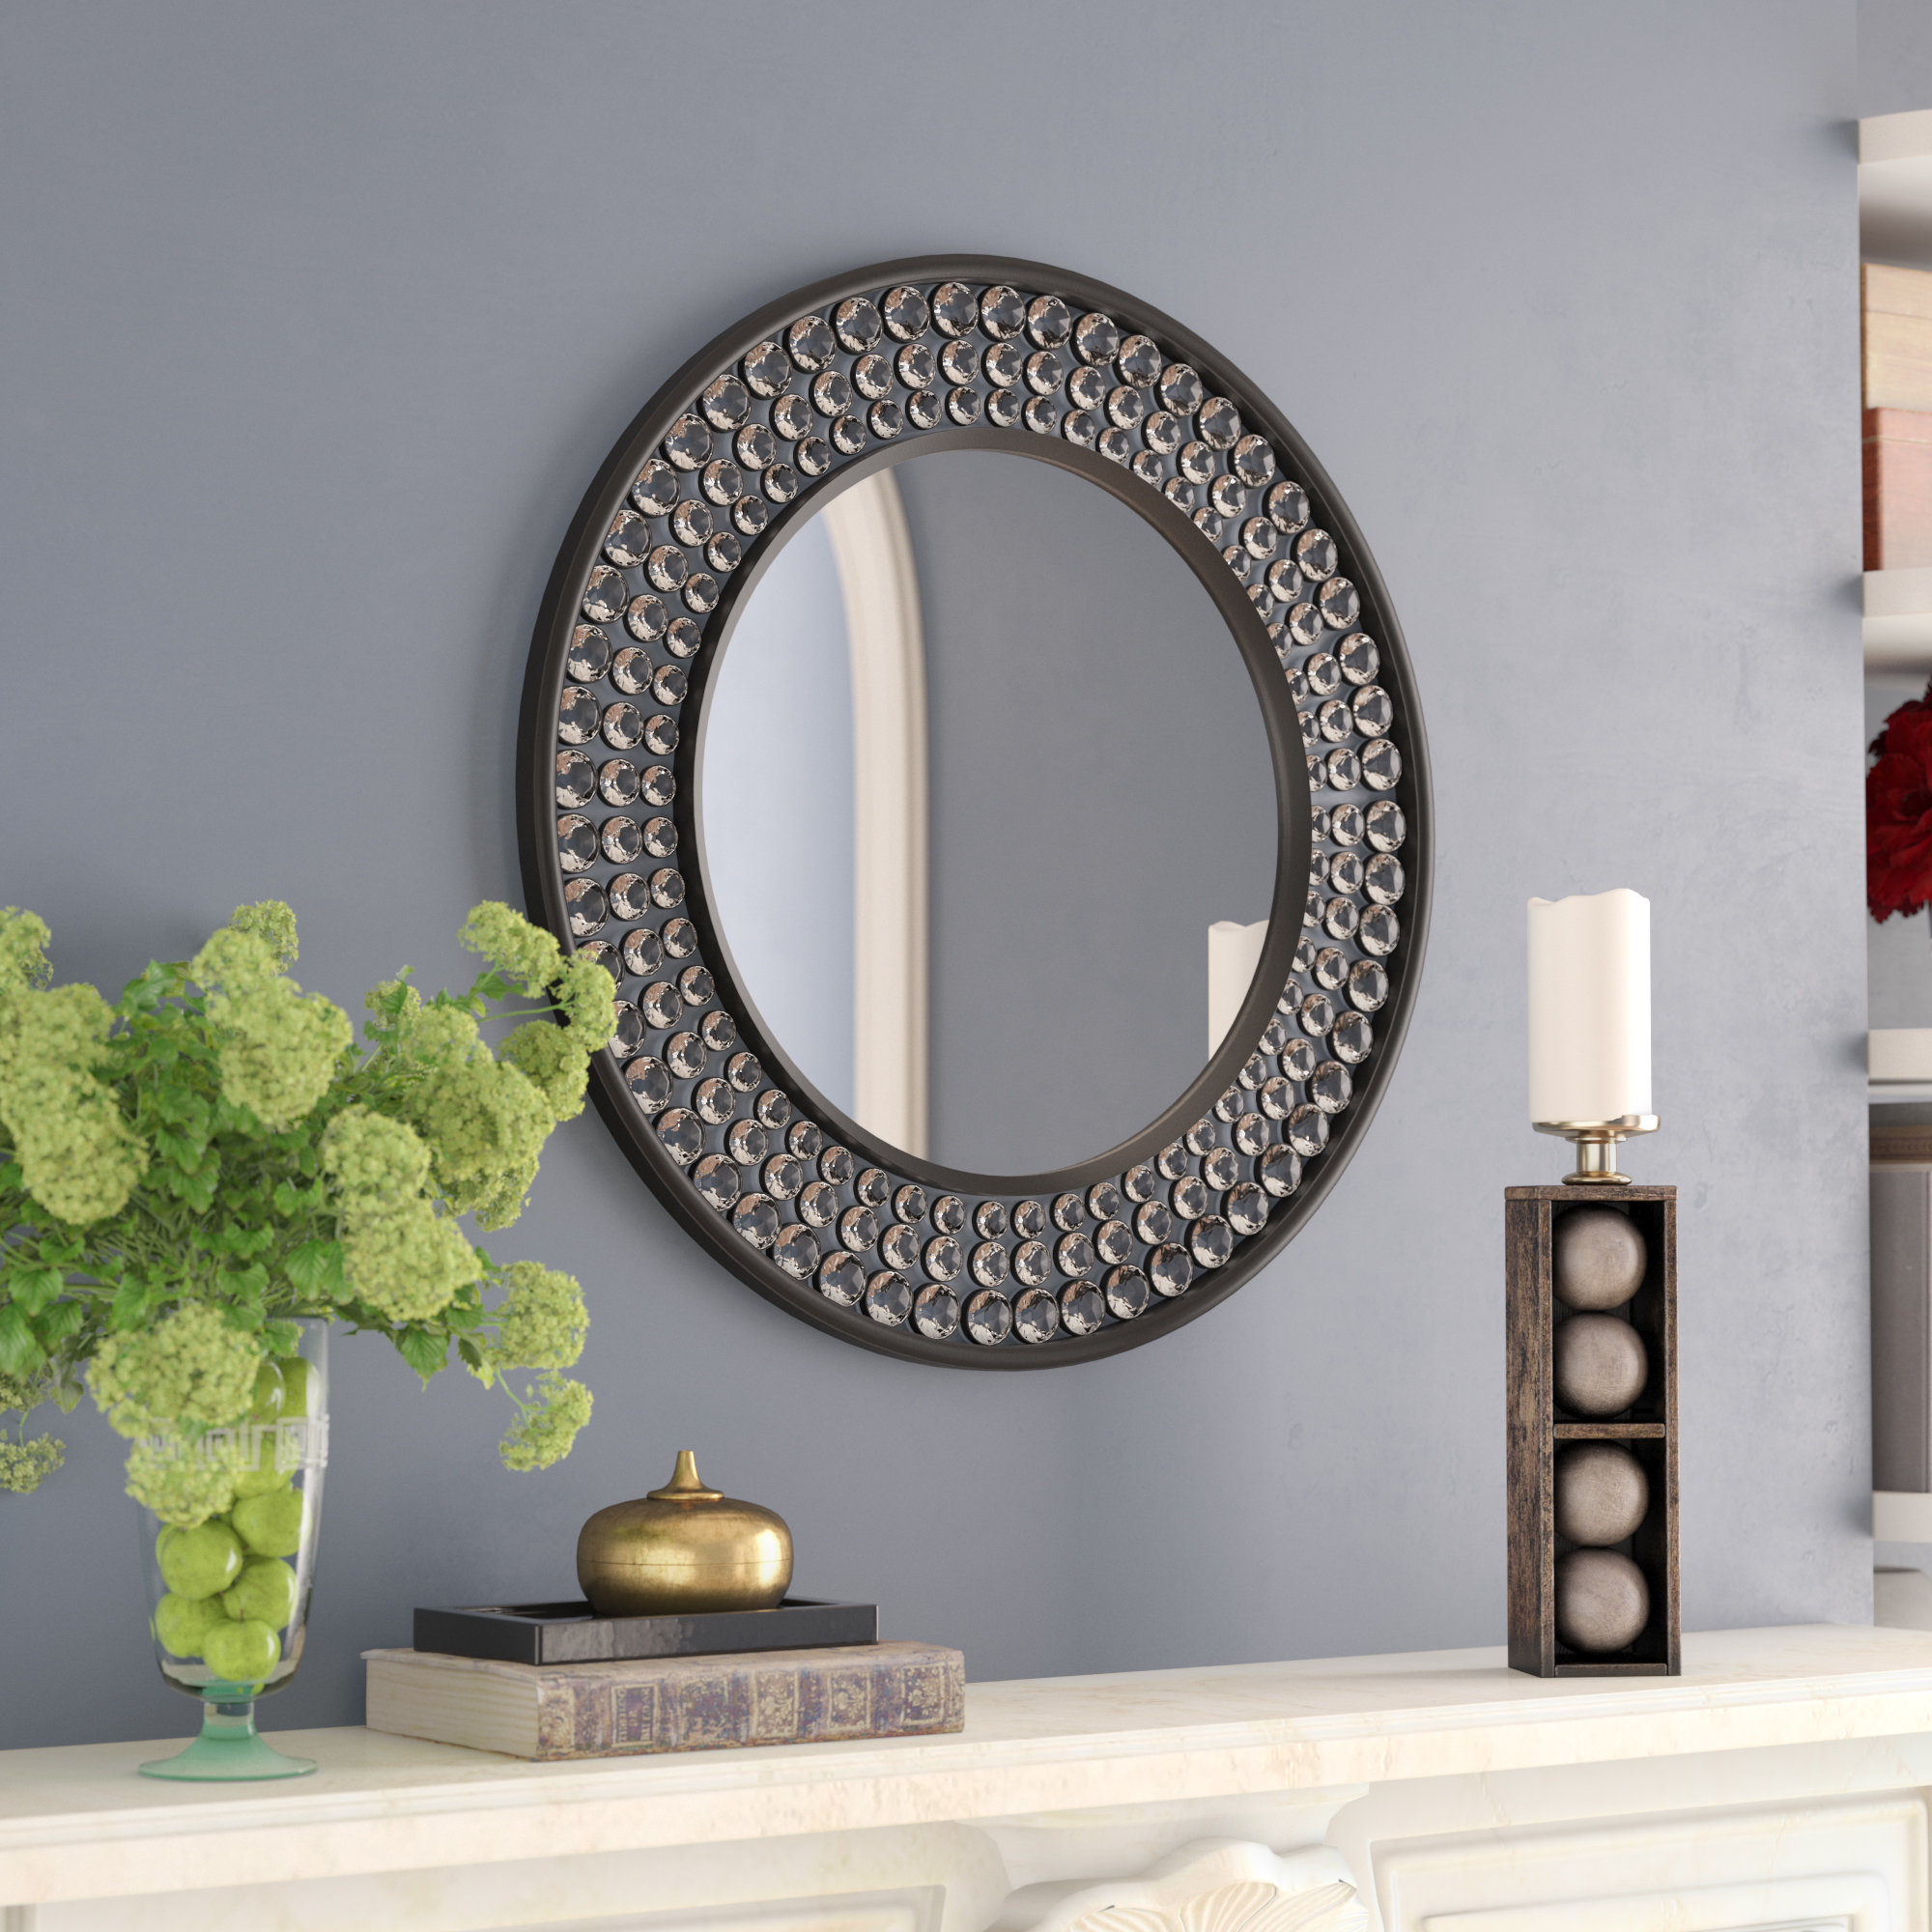 Current Valerian Jeweled Round Wall Mirror Regarding Point Reyes Molten Round Wall Mirrors (View 4 of 20)